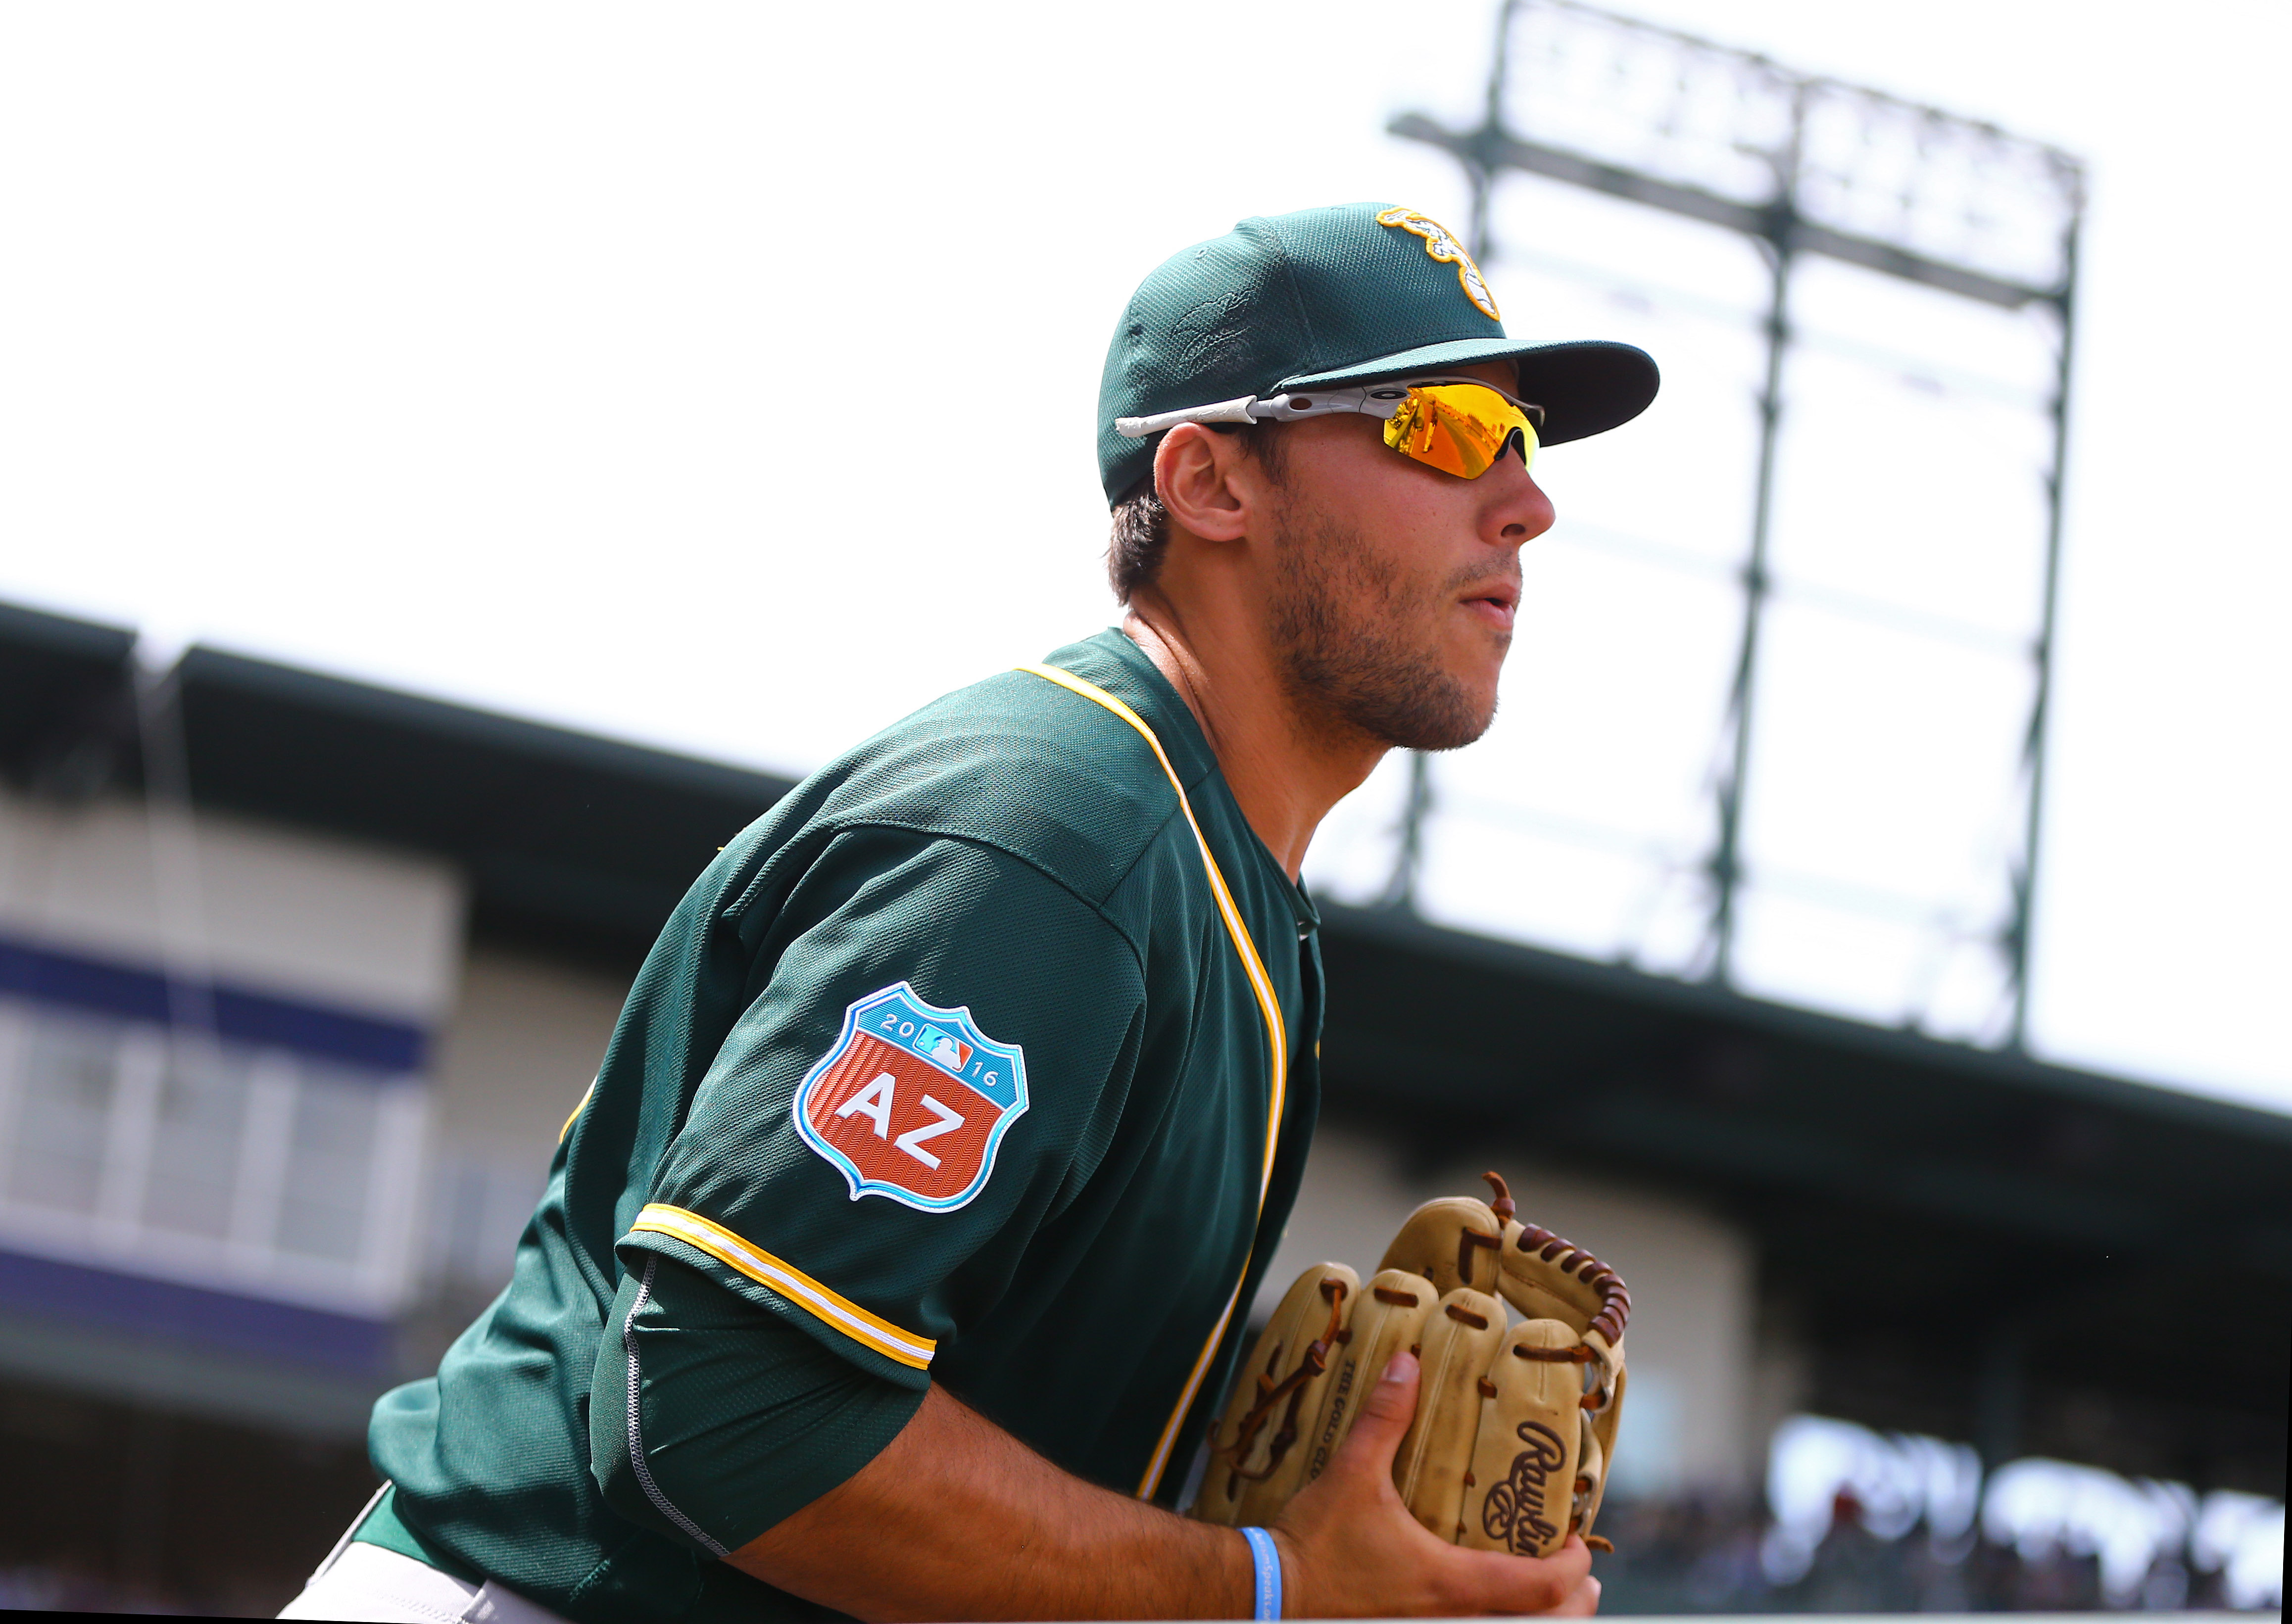 9220976-mlb-spring-training-oakland-athletics-at-chicago-cubs